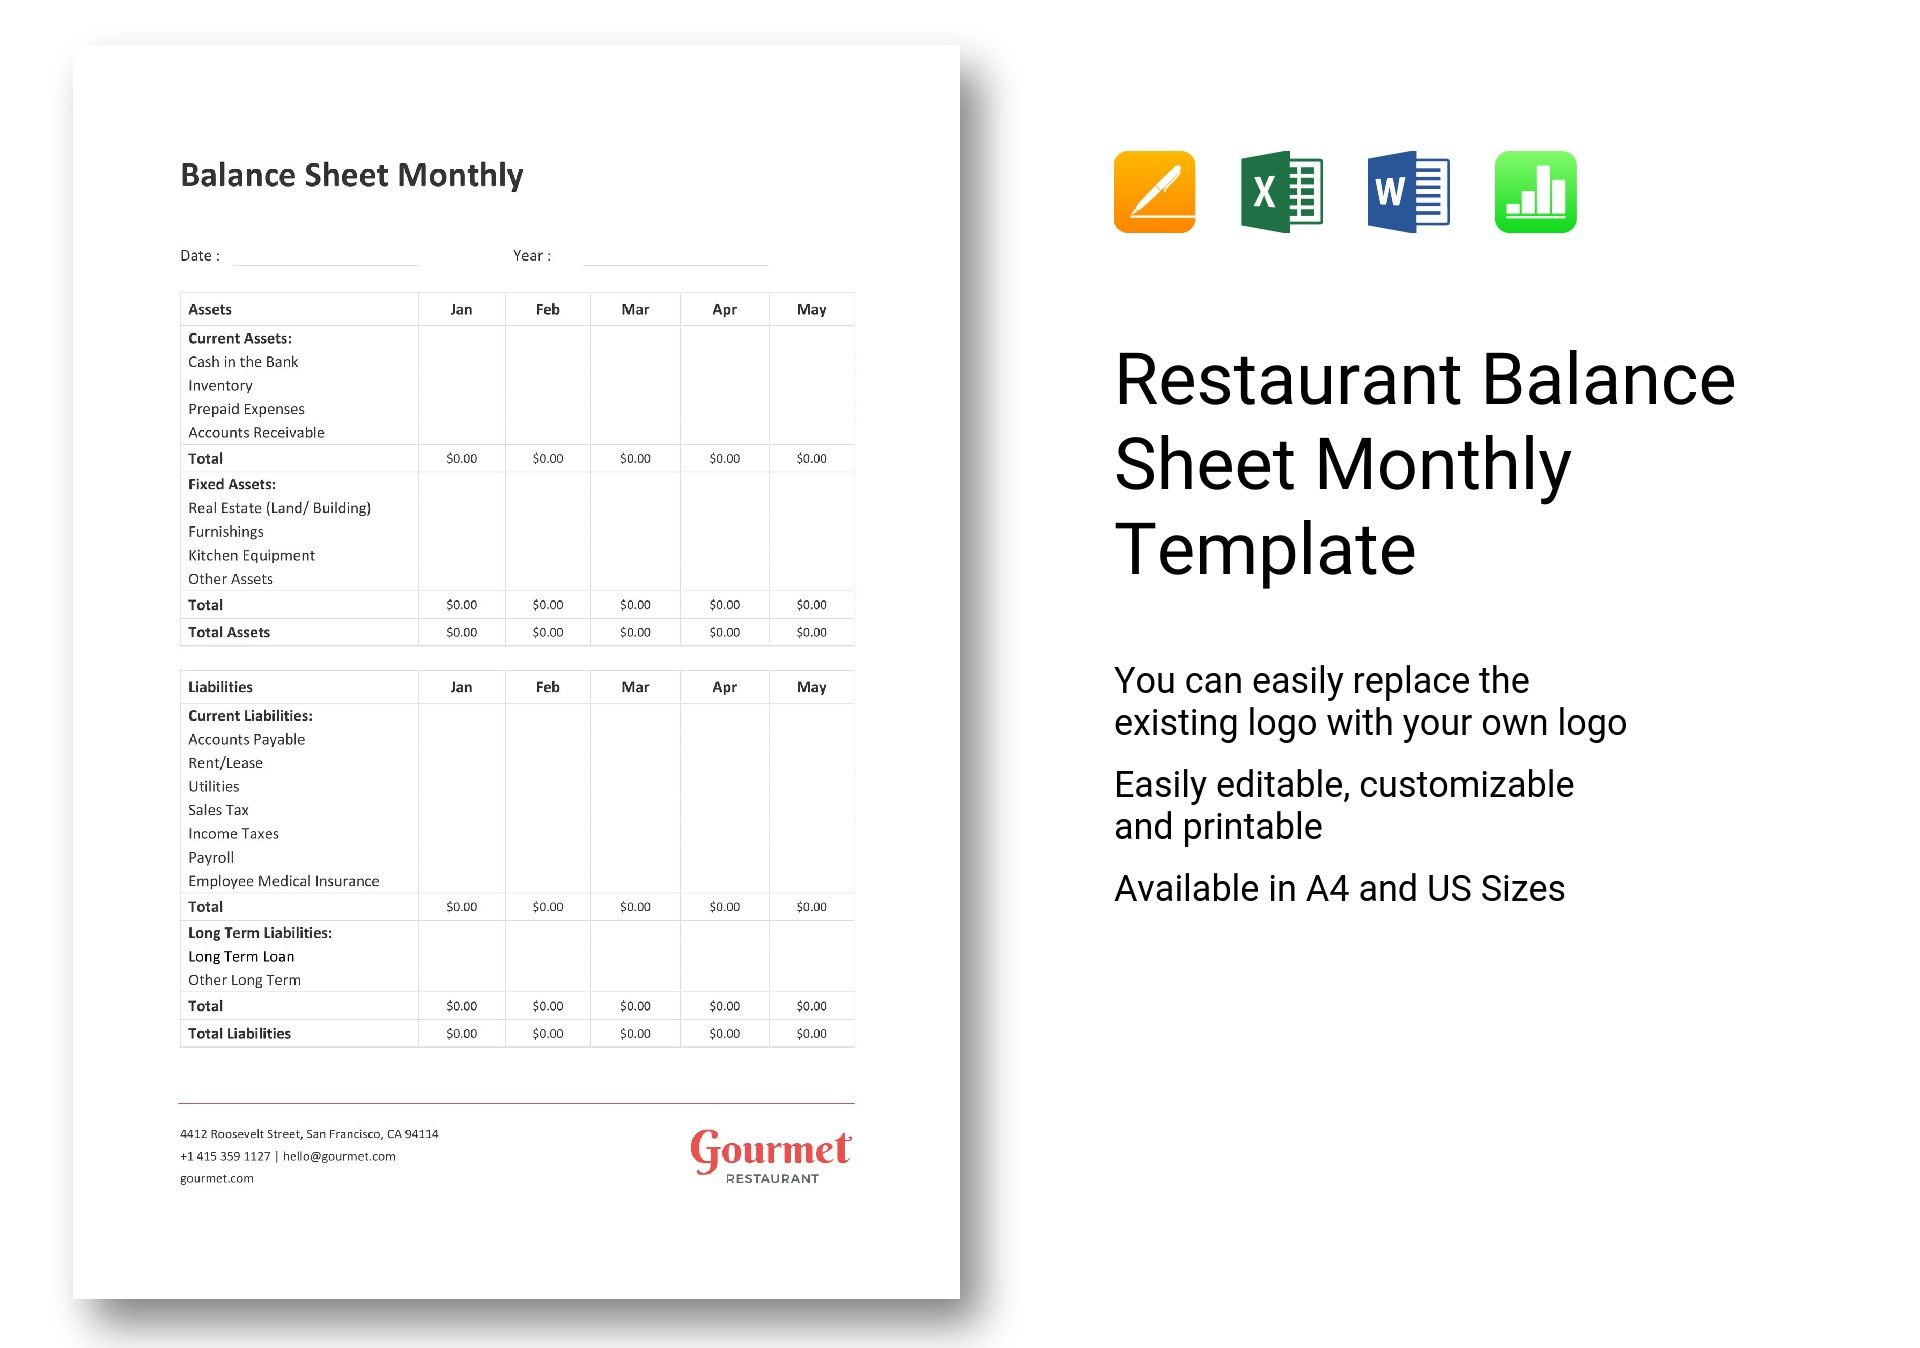 Restaurant Balance Sheet Monthly